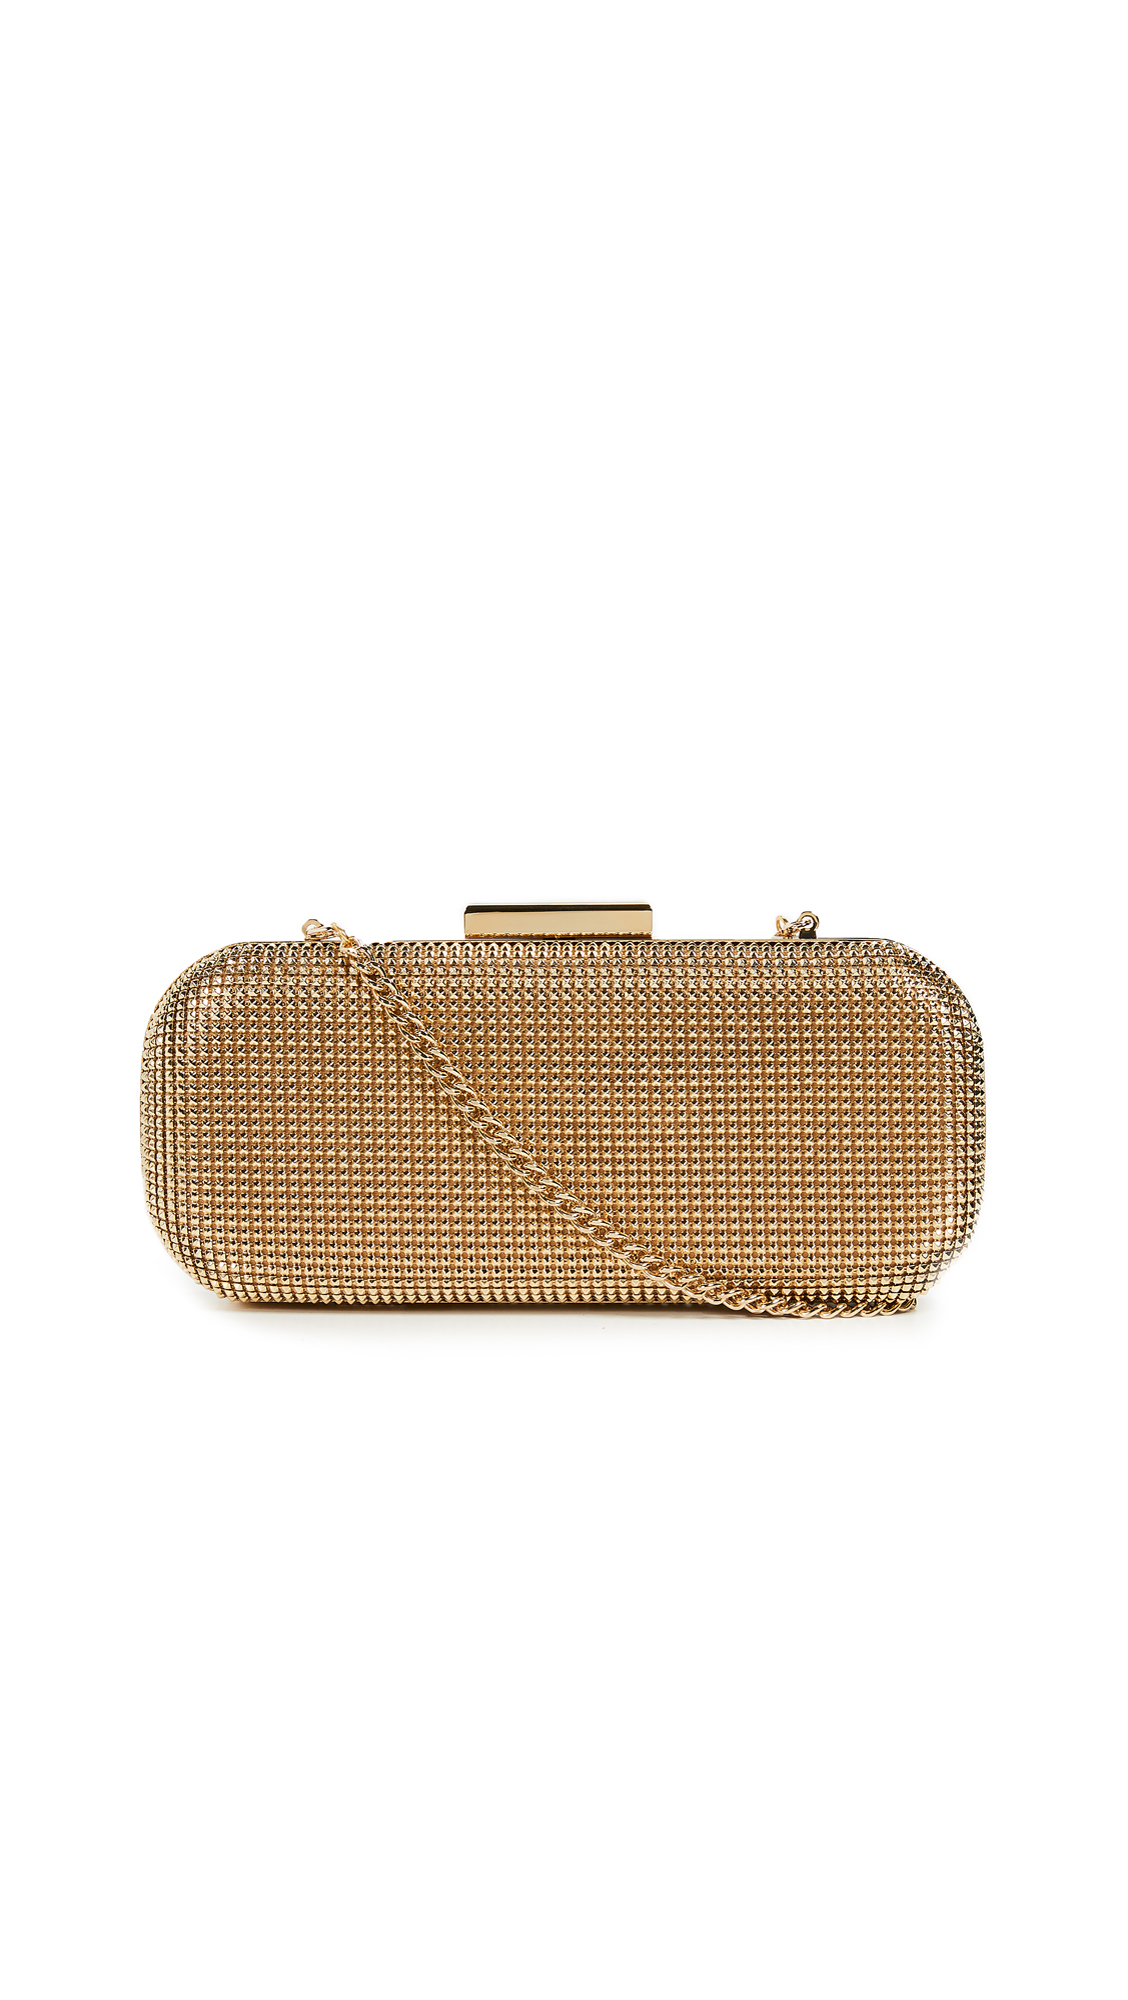 CAIRO MINAUDIERE from Shopbop